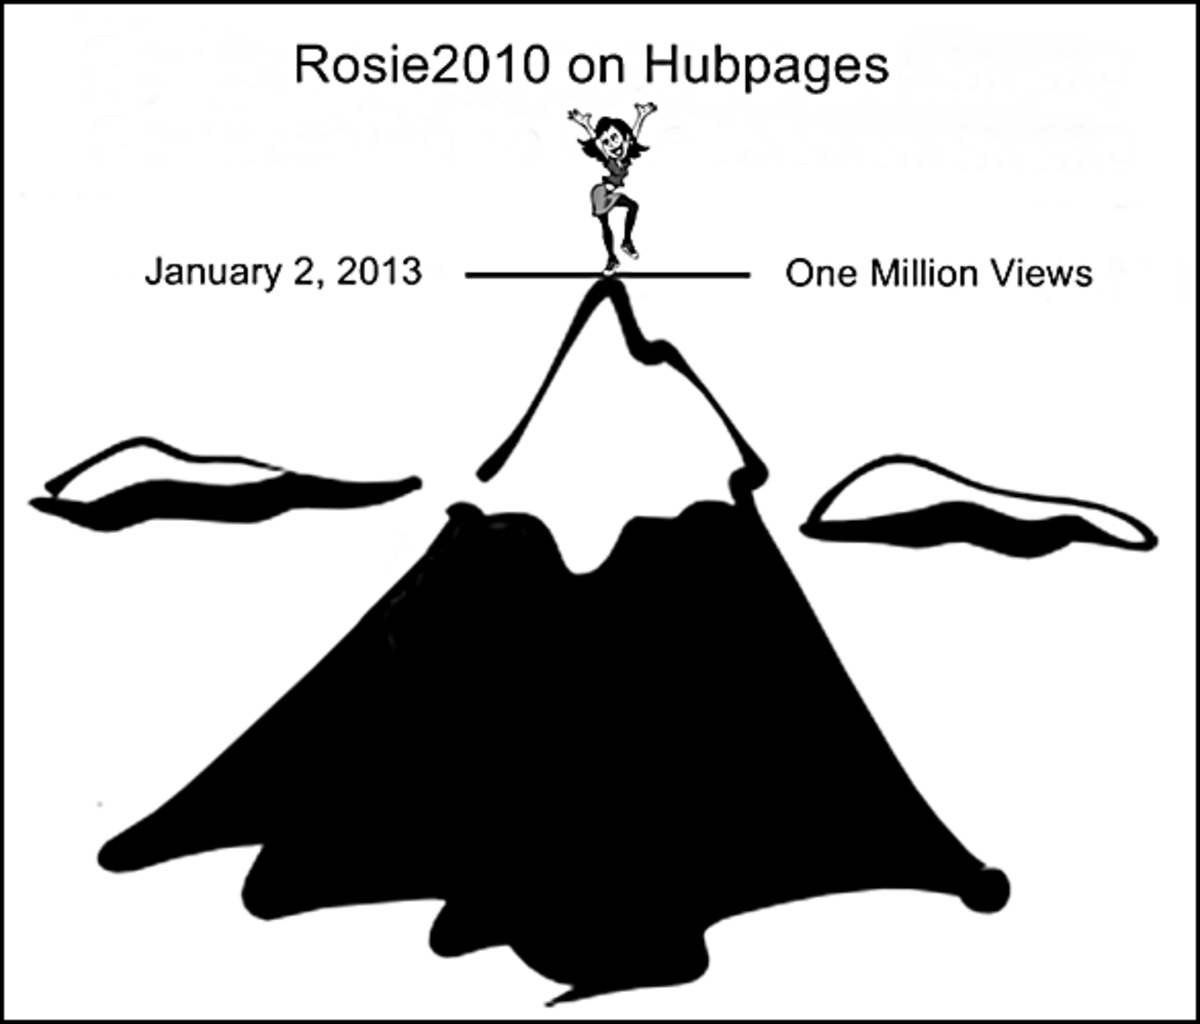 My Traffic on Hubpages - One Million Views